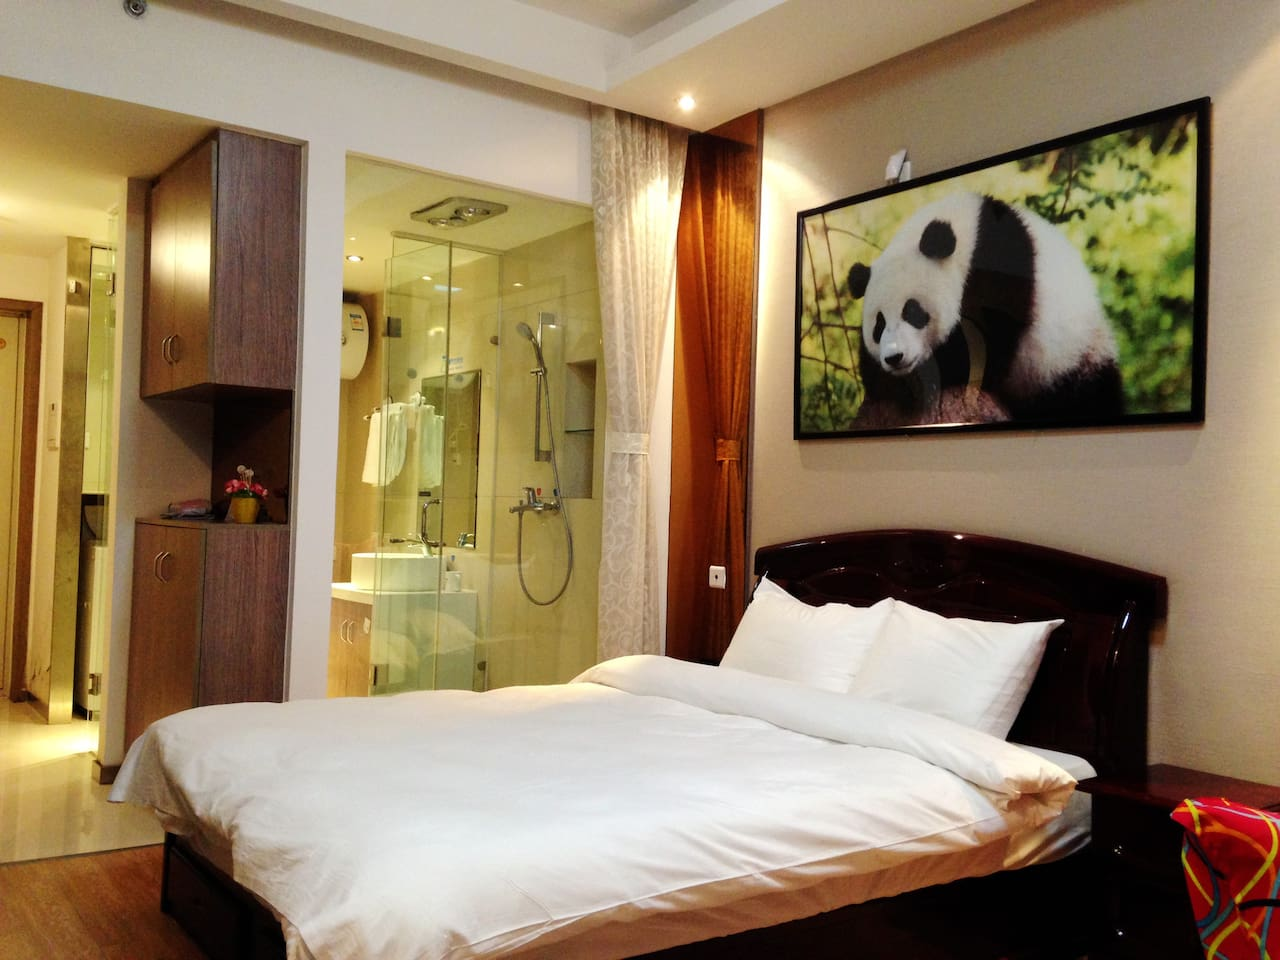 Spacious Room Area-45㎡ with Panda decorations!